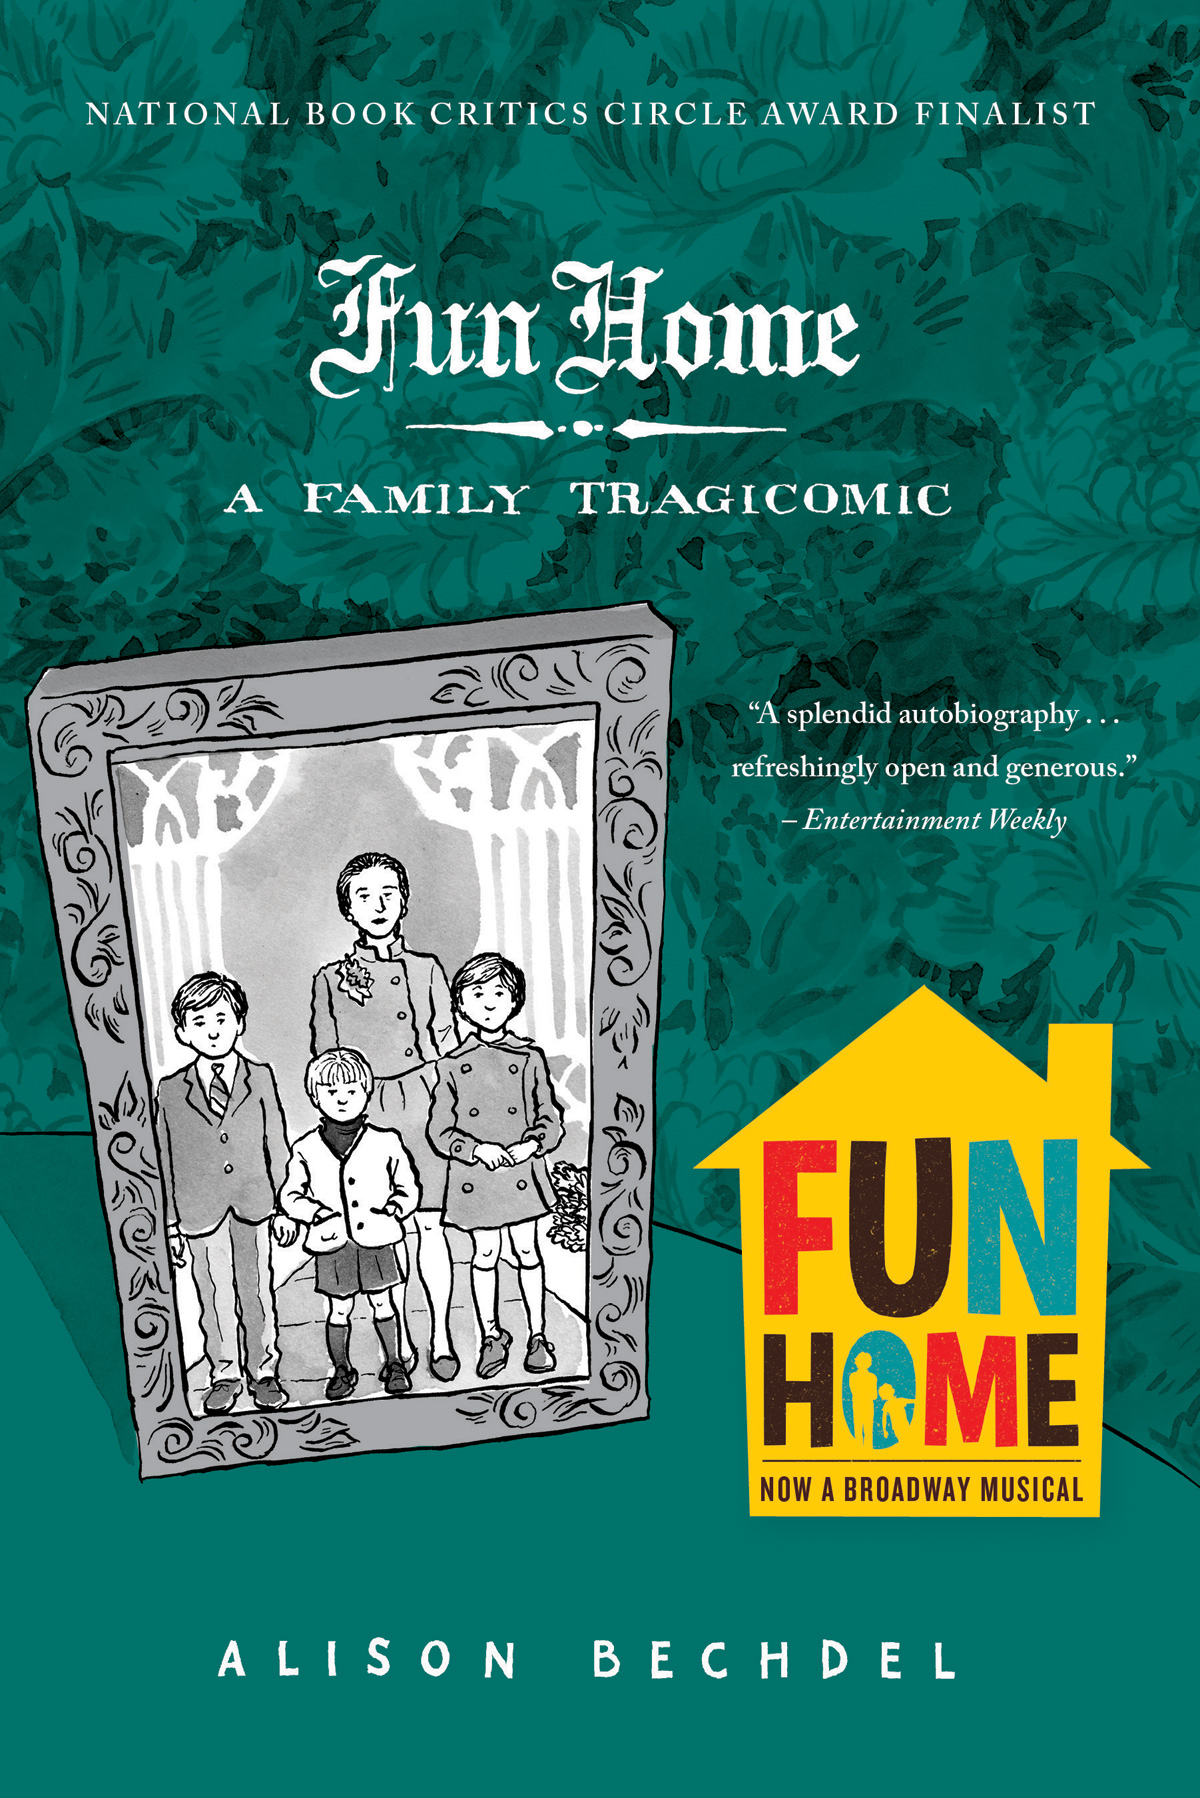 Fun Home: A Family Tragicomic by Alison Bechdel